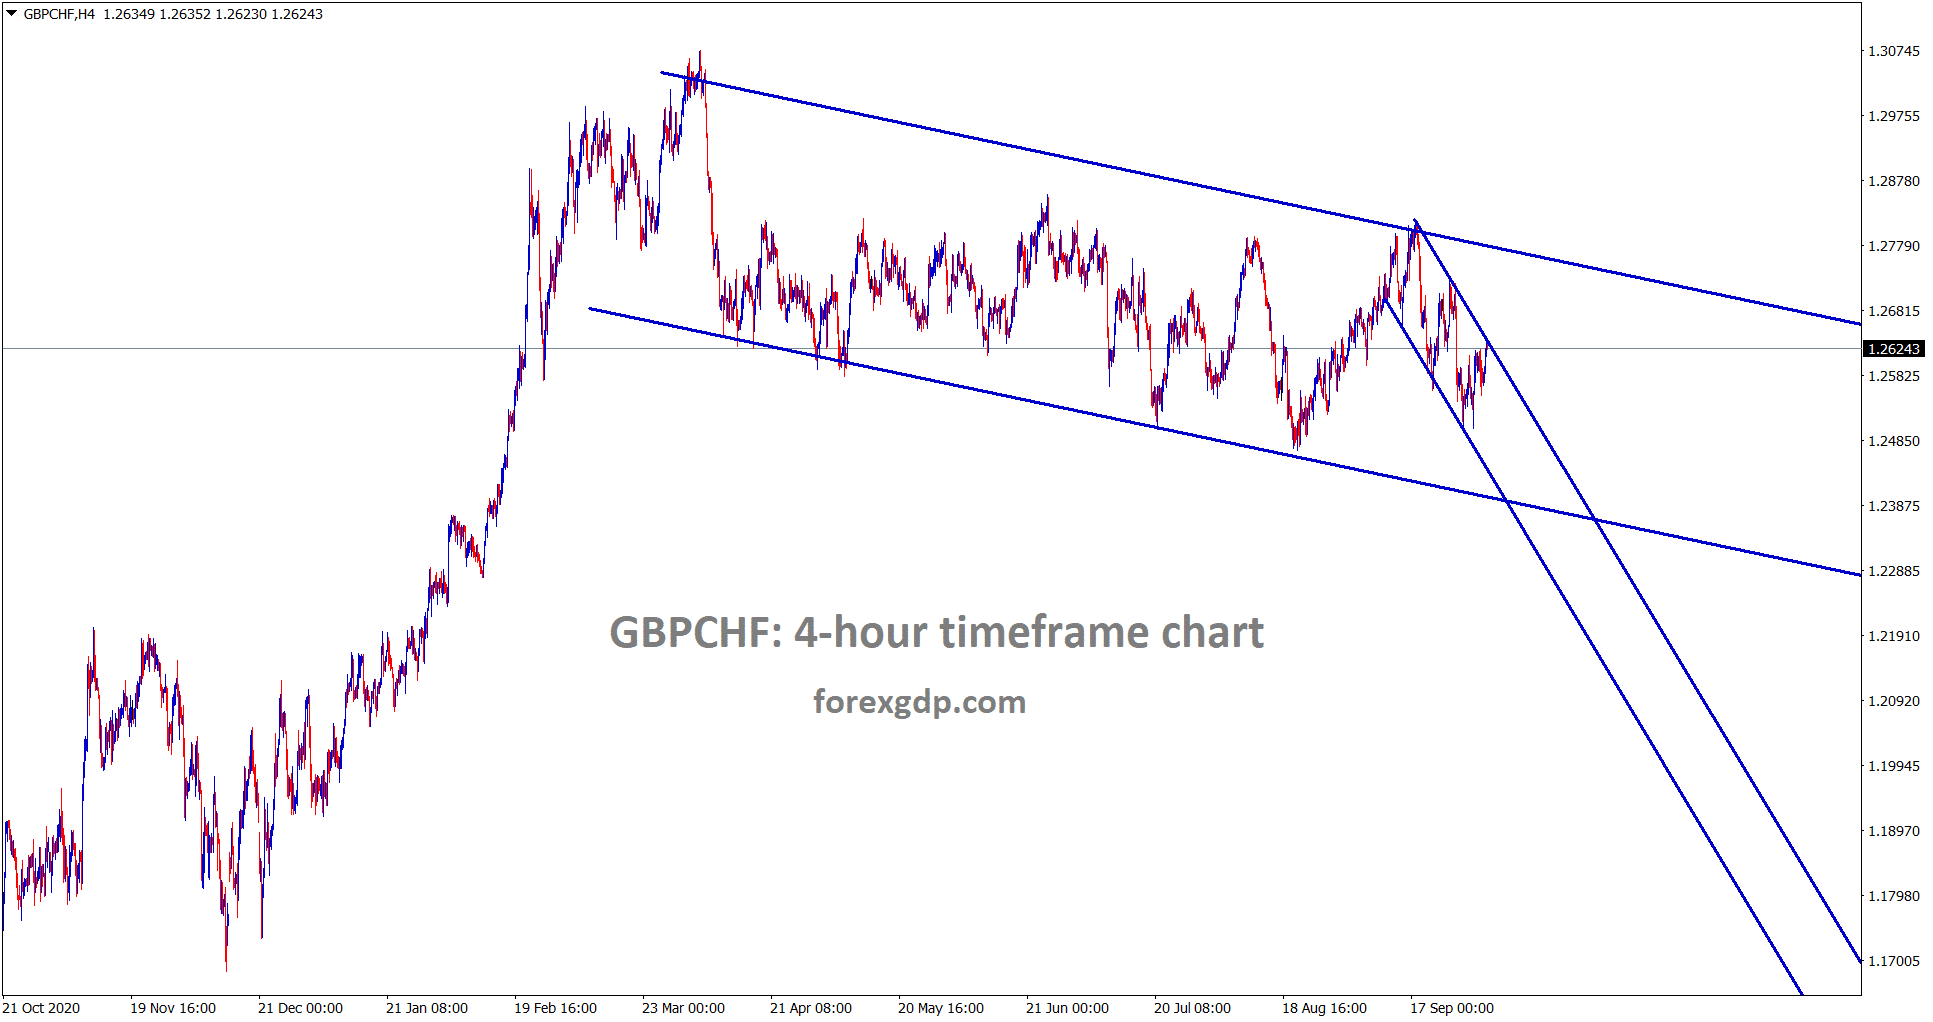 GBPCHF is standing at the lower high of the minor descending channel wait for breakout from this minor descending channel